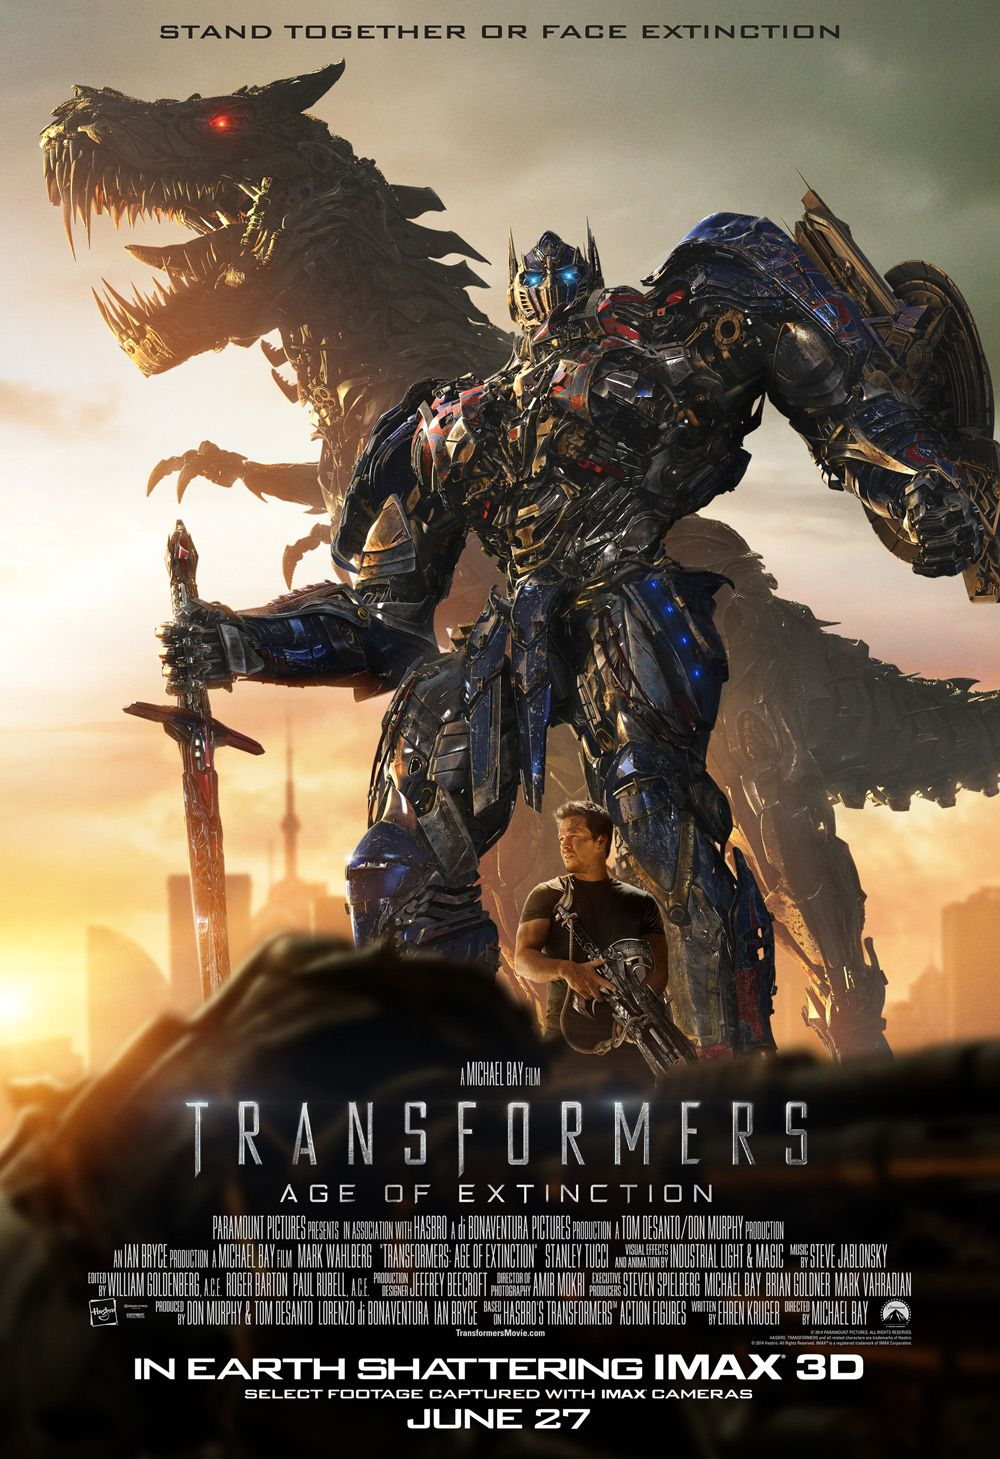 Transformers: Age of Extinction #IMAX Exclusive Art Crushes All Others | Transformers age, Transformers poster, Transformers age of extinction